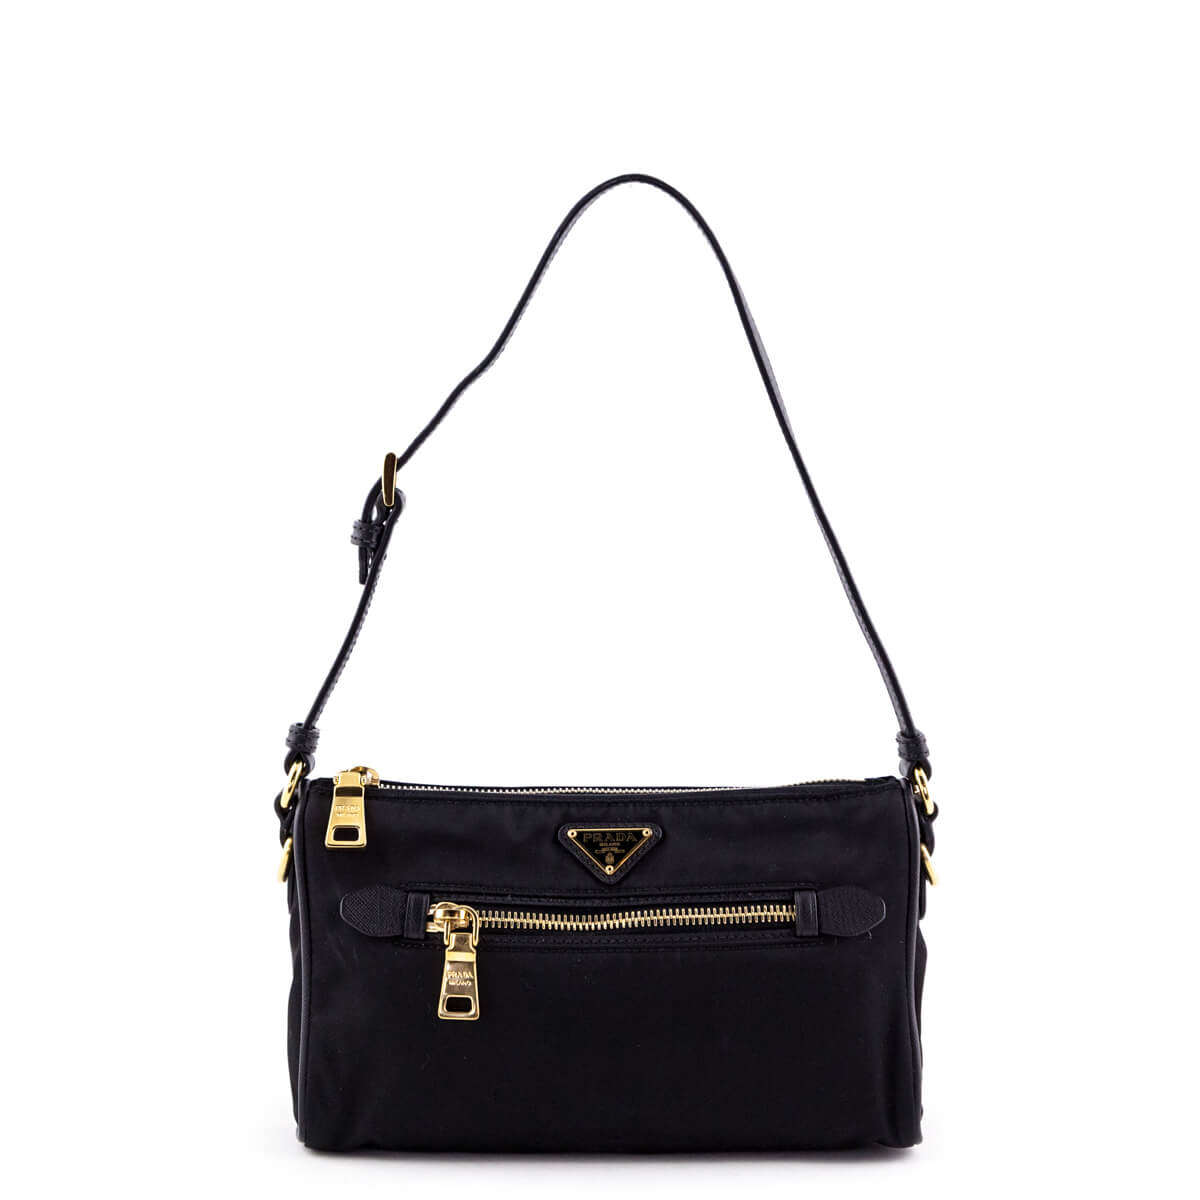 c255fd7a6a Prada Black Tessuto Saffiano Trimmed Sottospalla Shoulder Bag - LOVE that  BAG - Preowned Authentic Designer ...